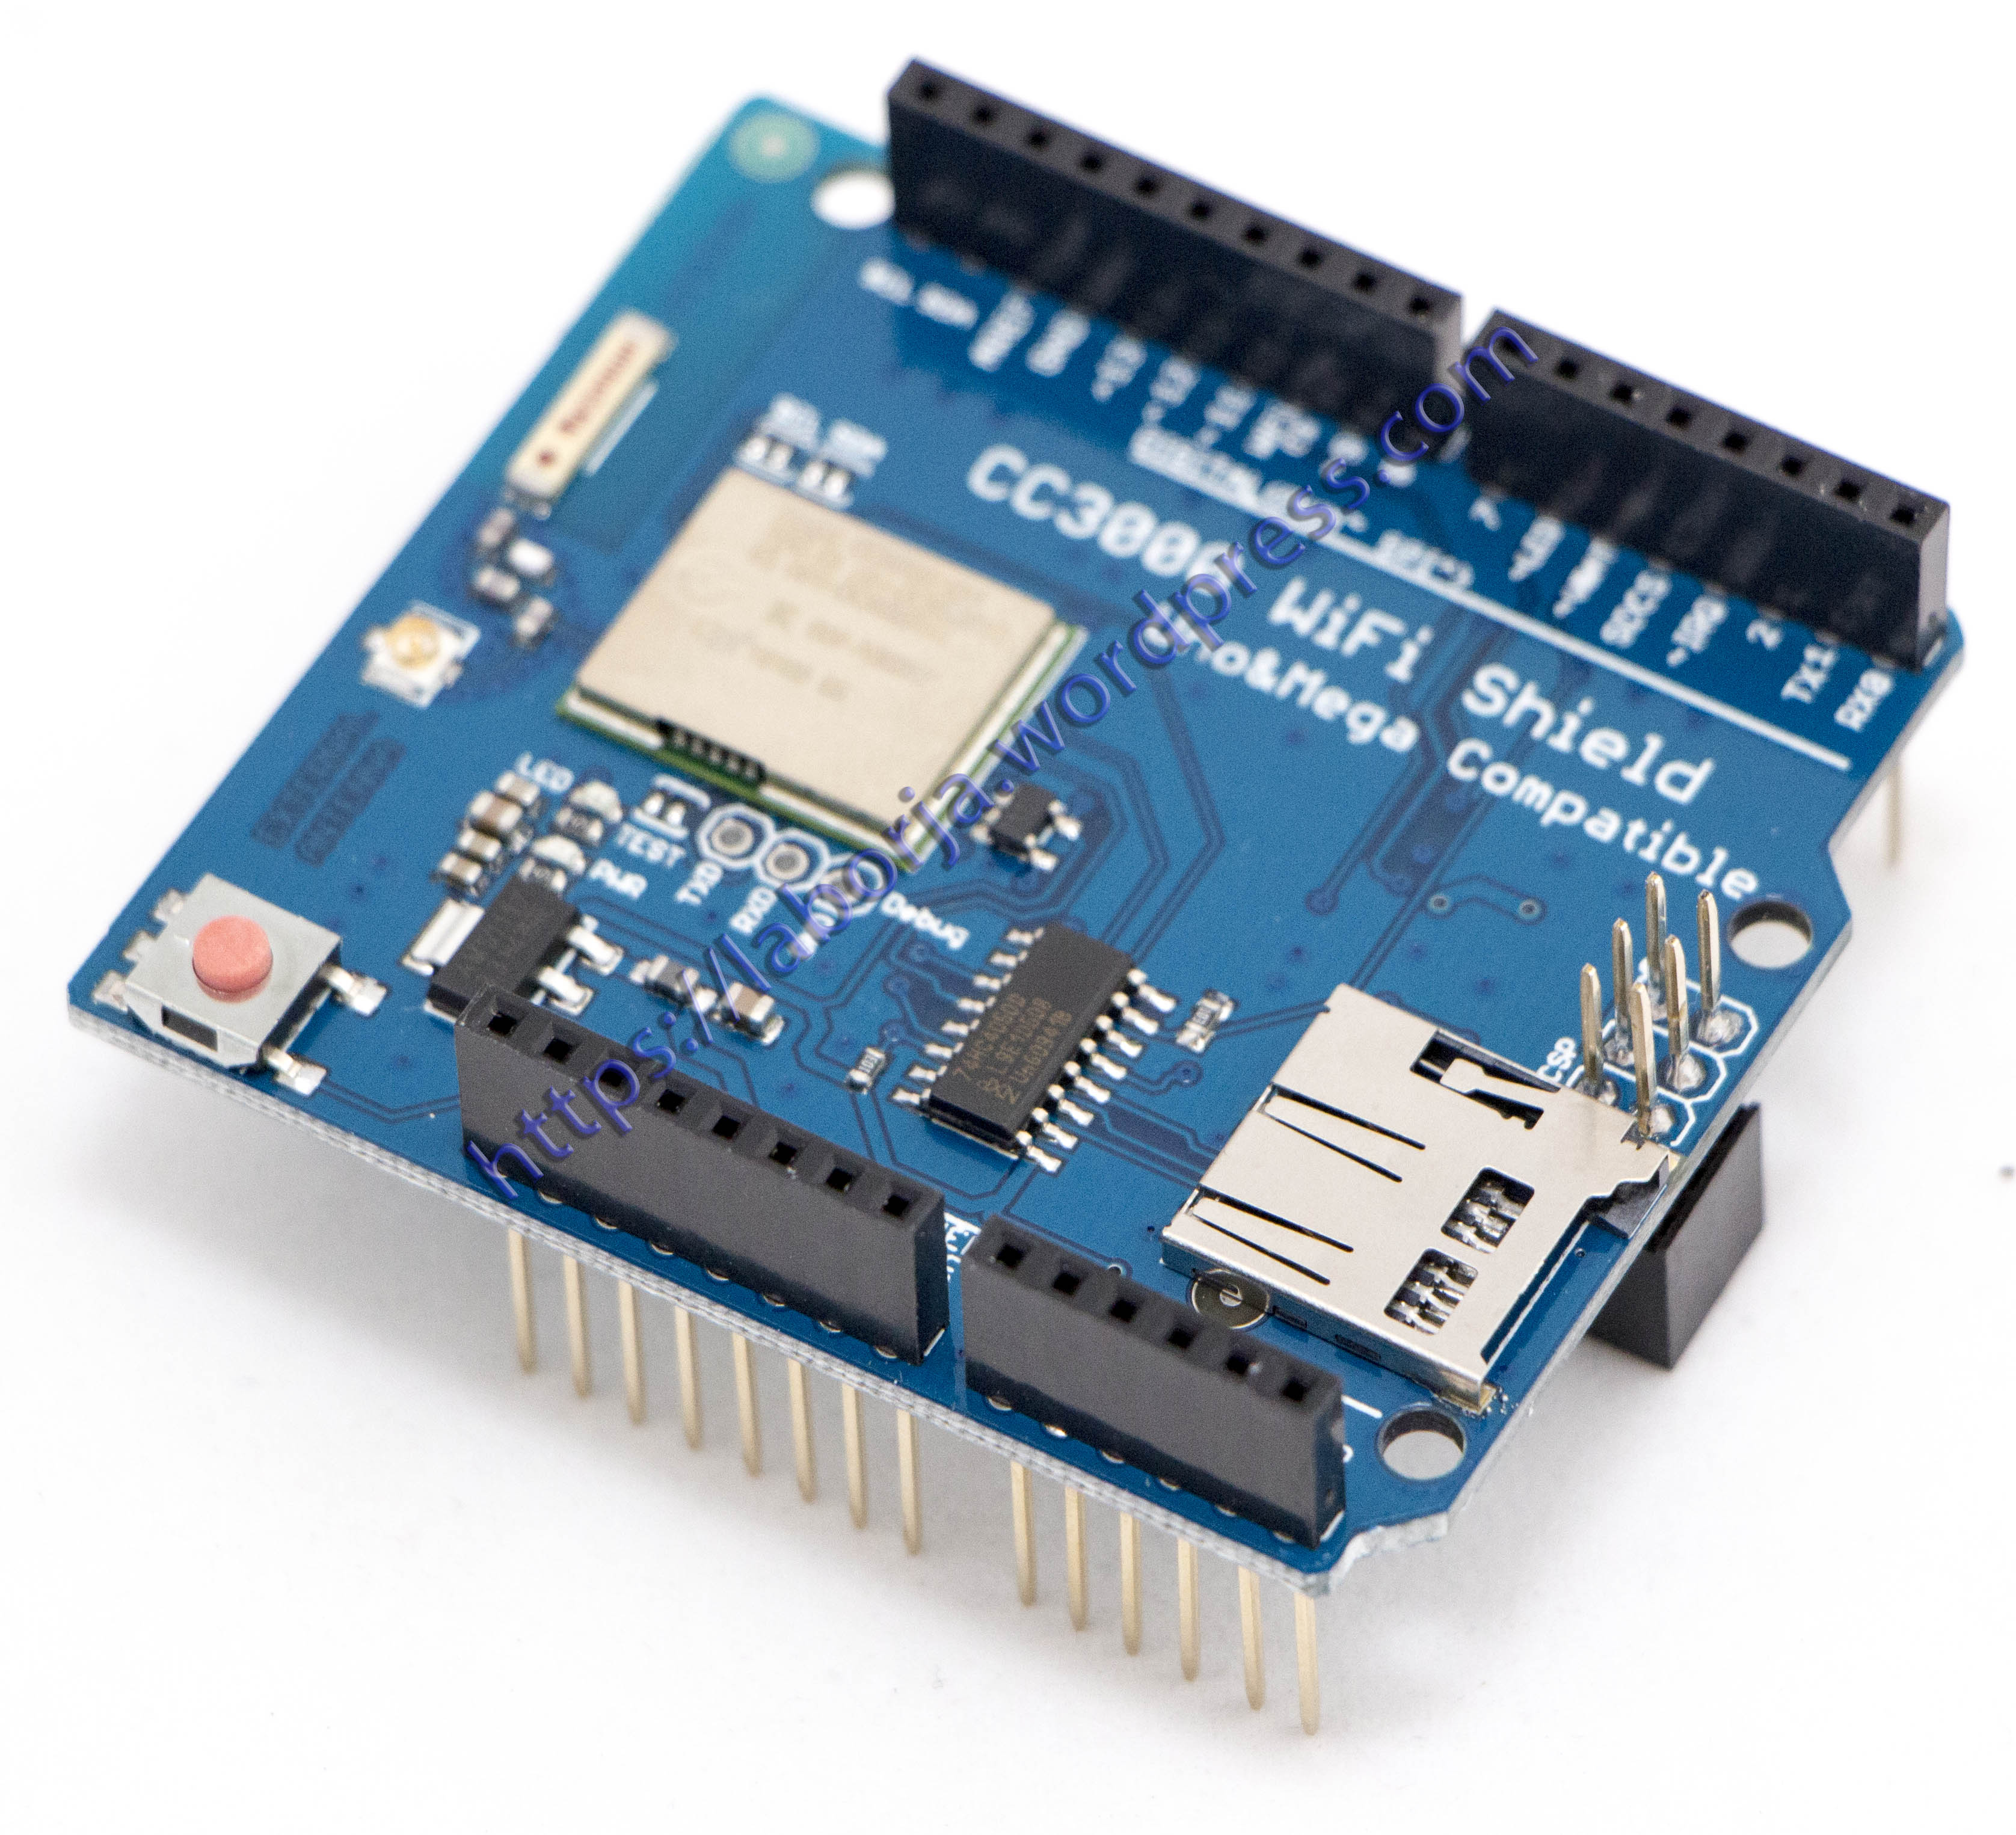 CC3000 WiFi Shield | Borja Home Page